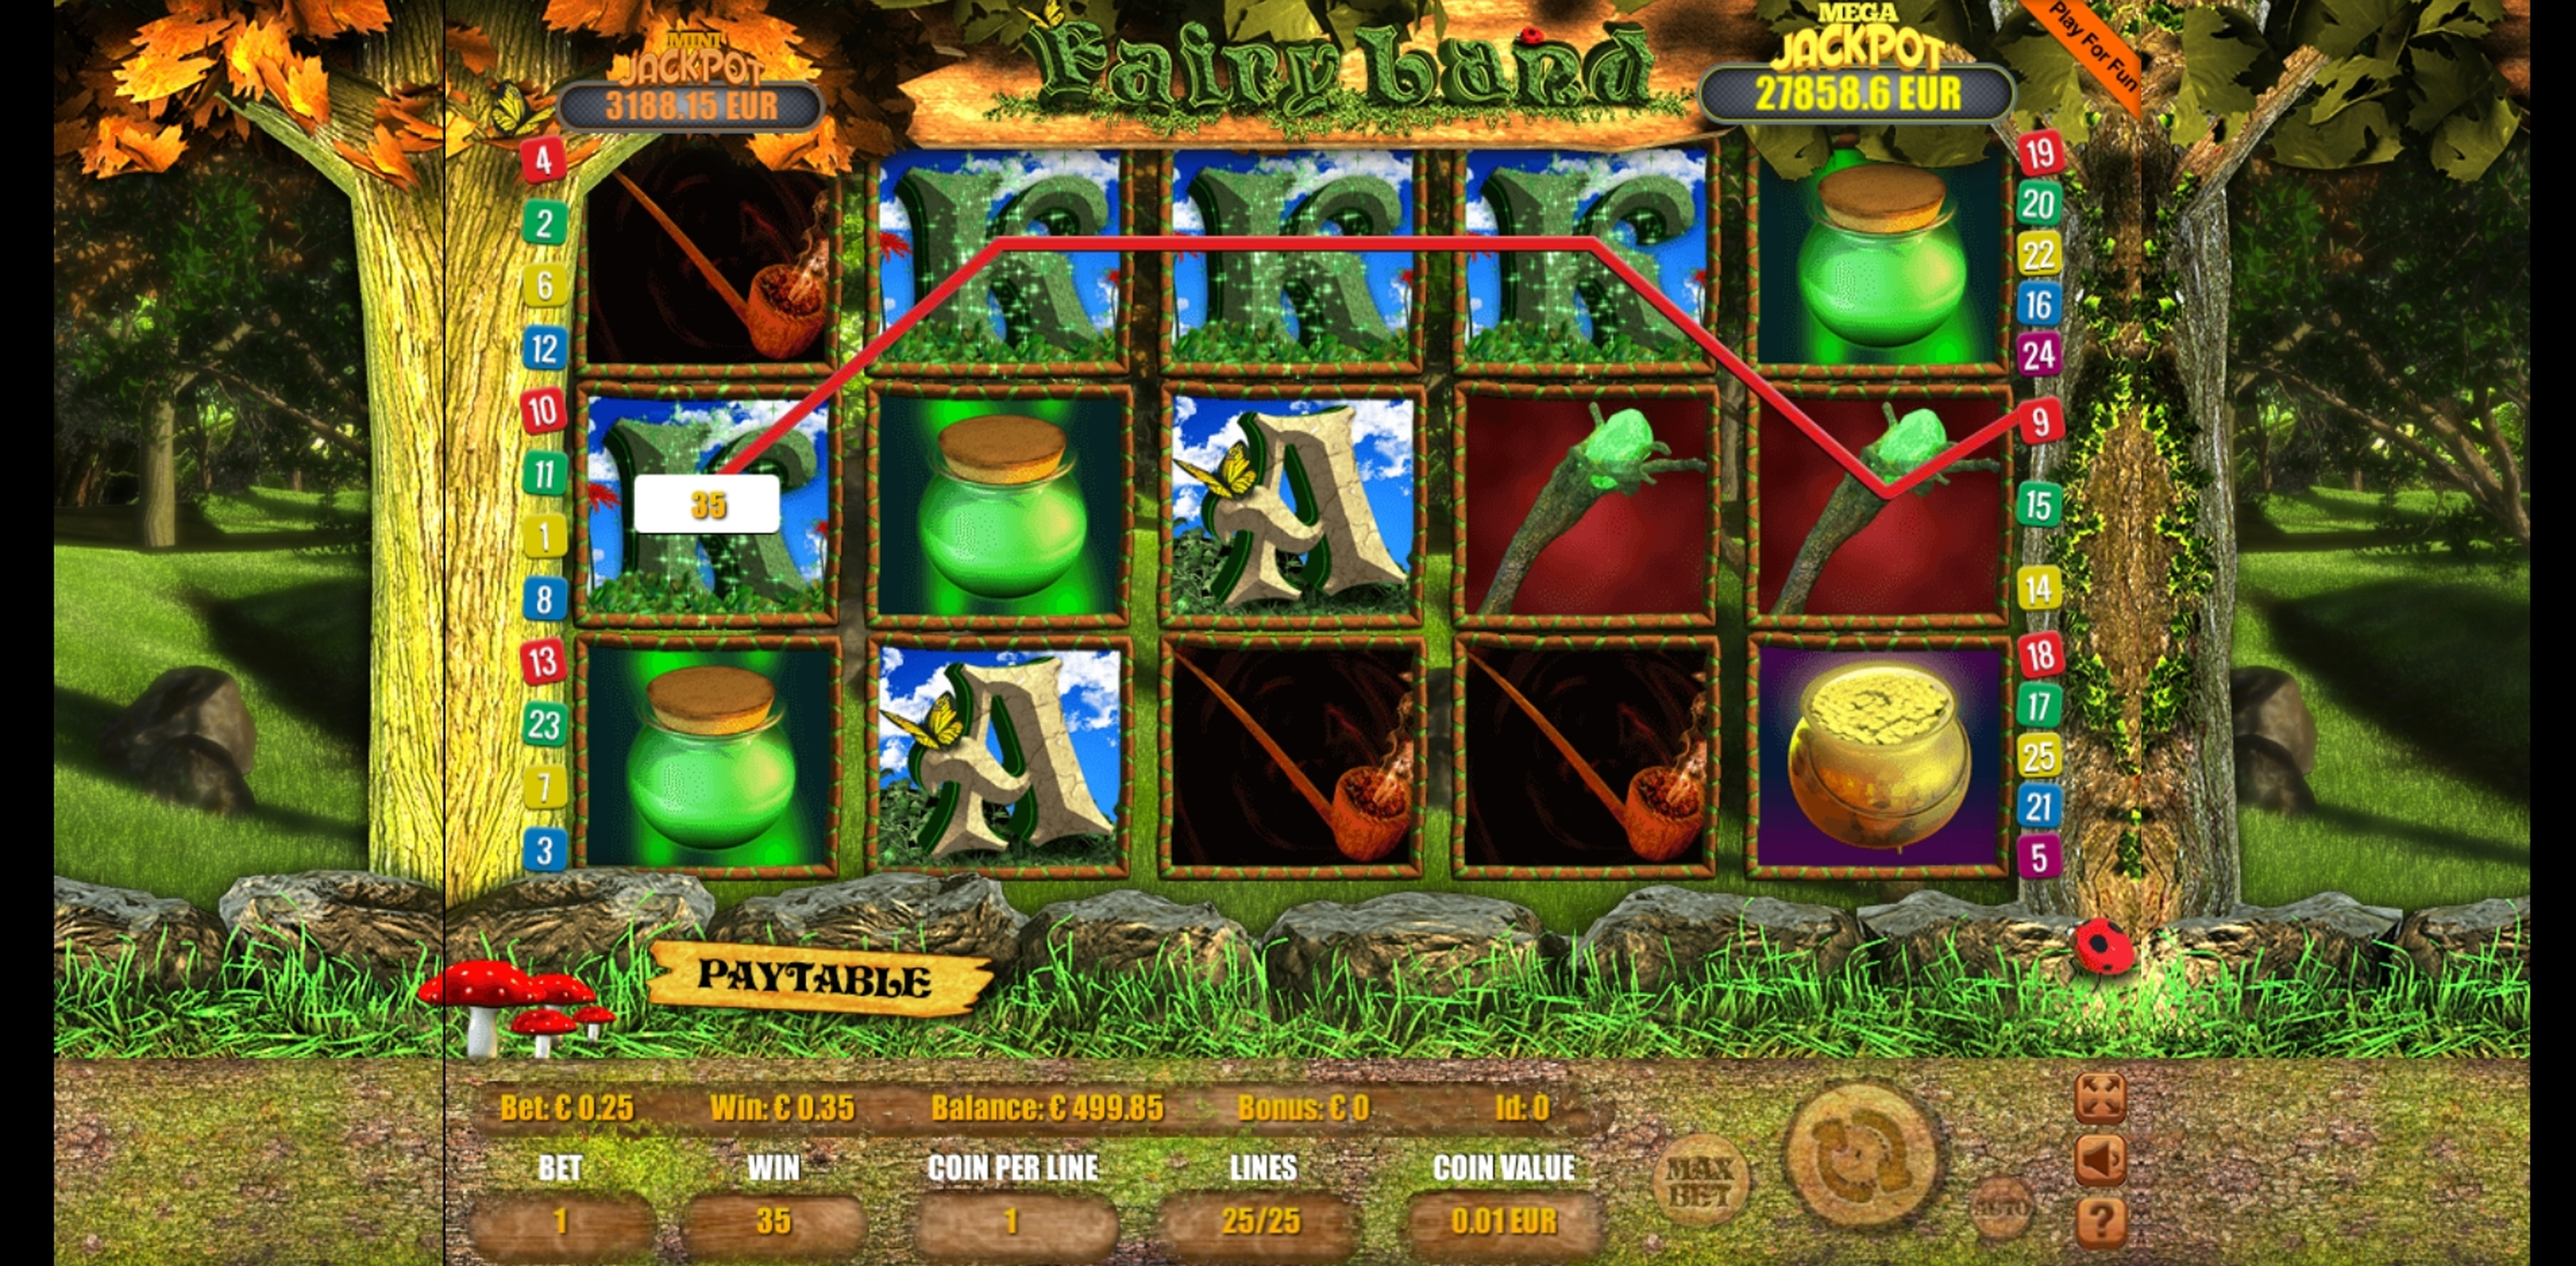 Win Money in Fairyland Free Slot Game by bluberi